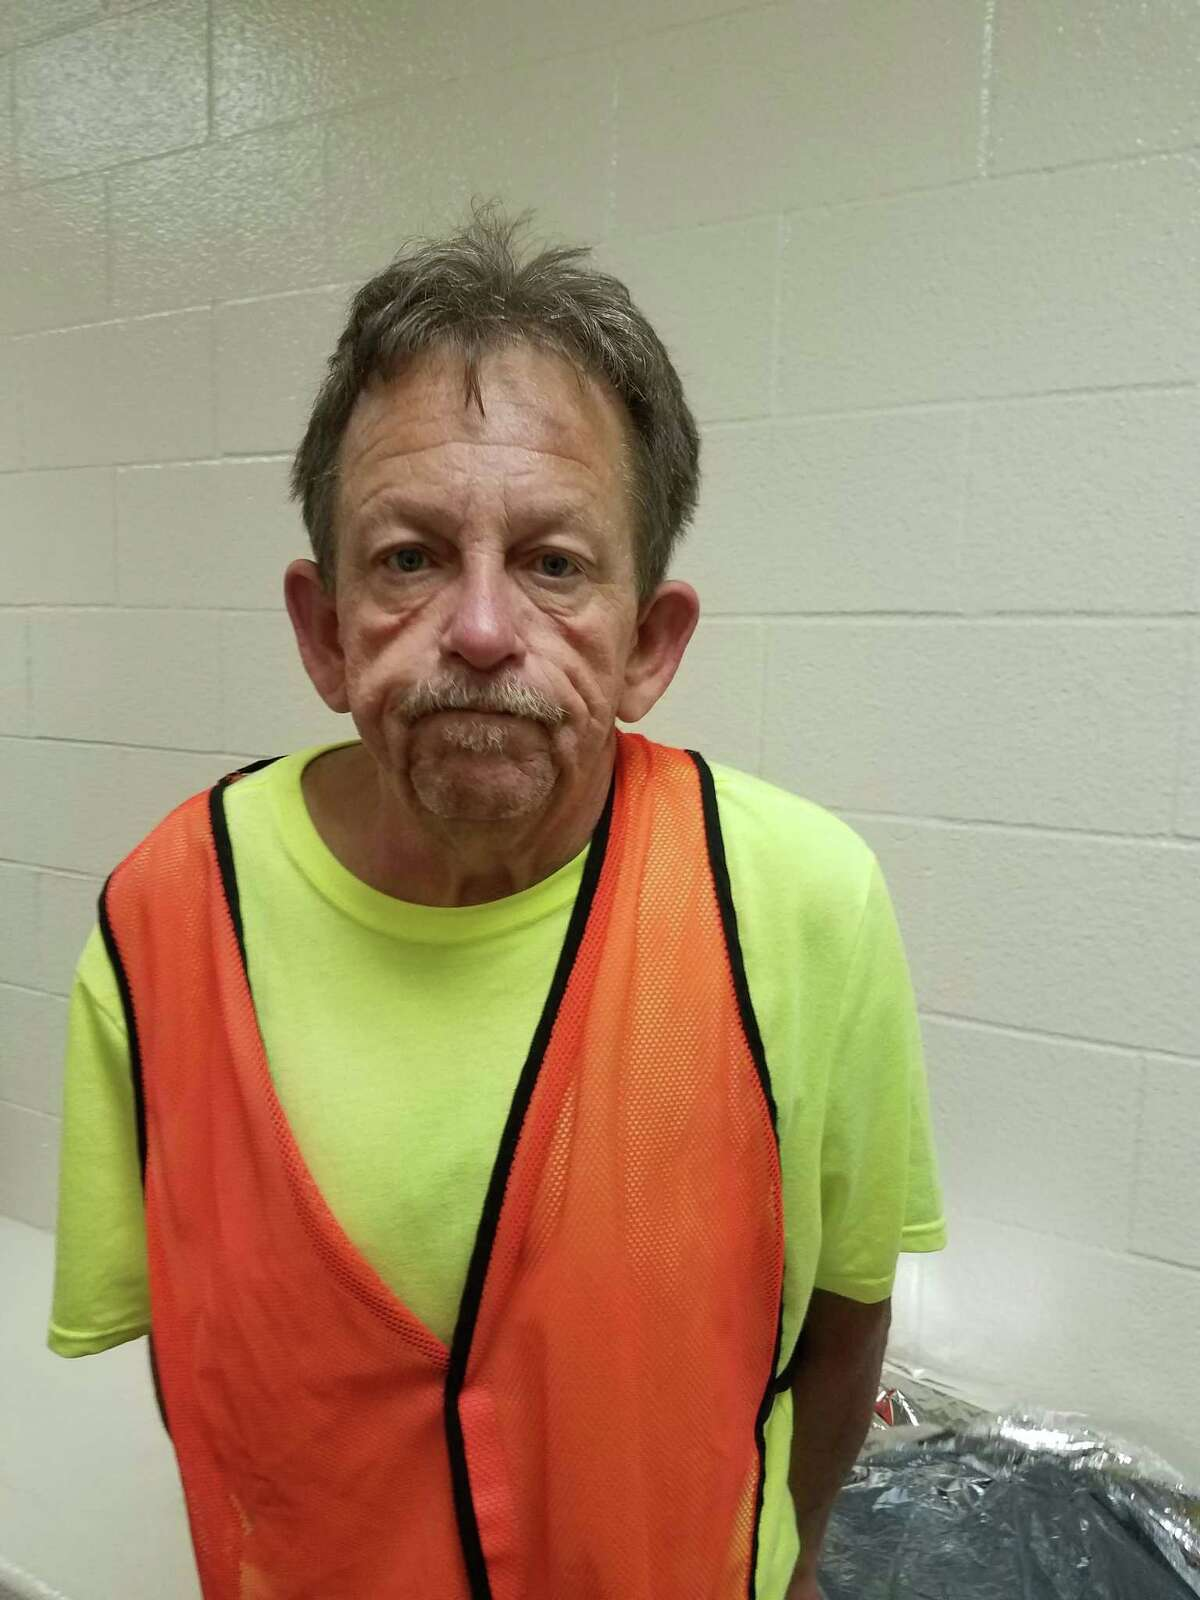 Jeffrey Layne Parker, 57, was sentenced to 14 years in prison following his conviction of trafficking heroin, cocaine and nearly 26 pounds of fentanyl.